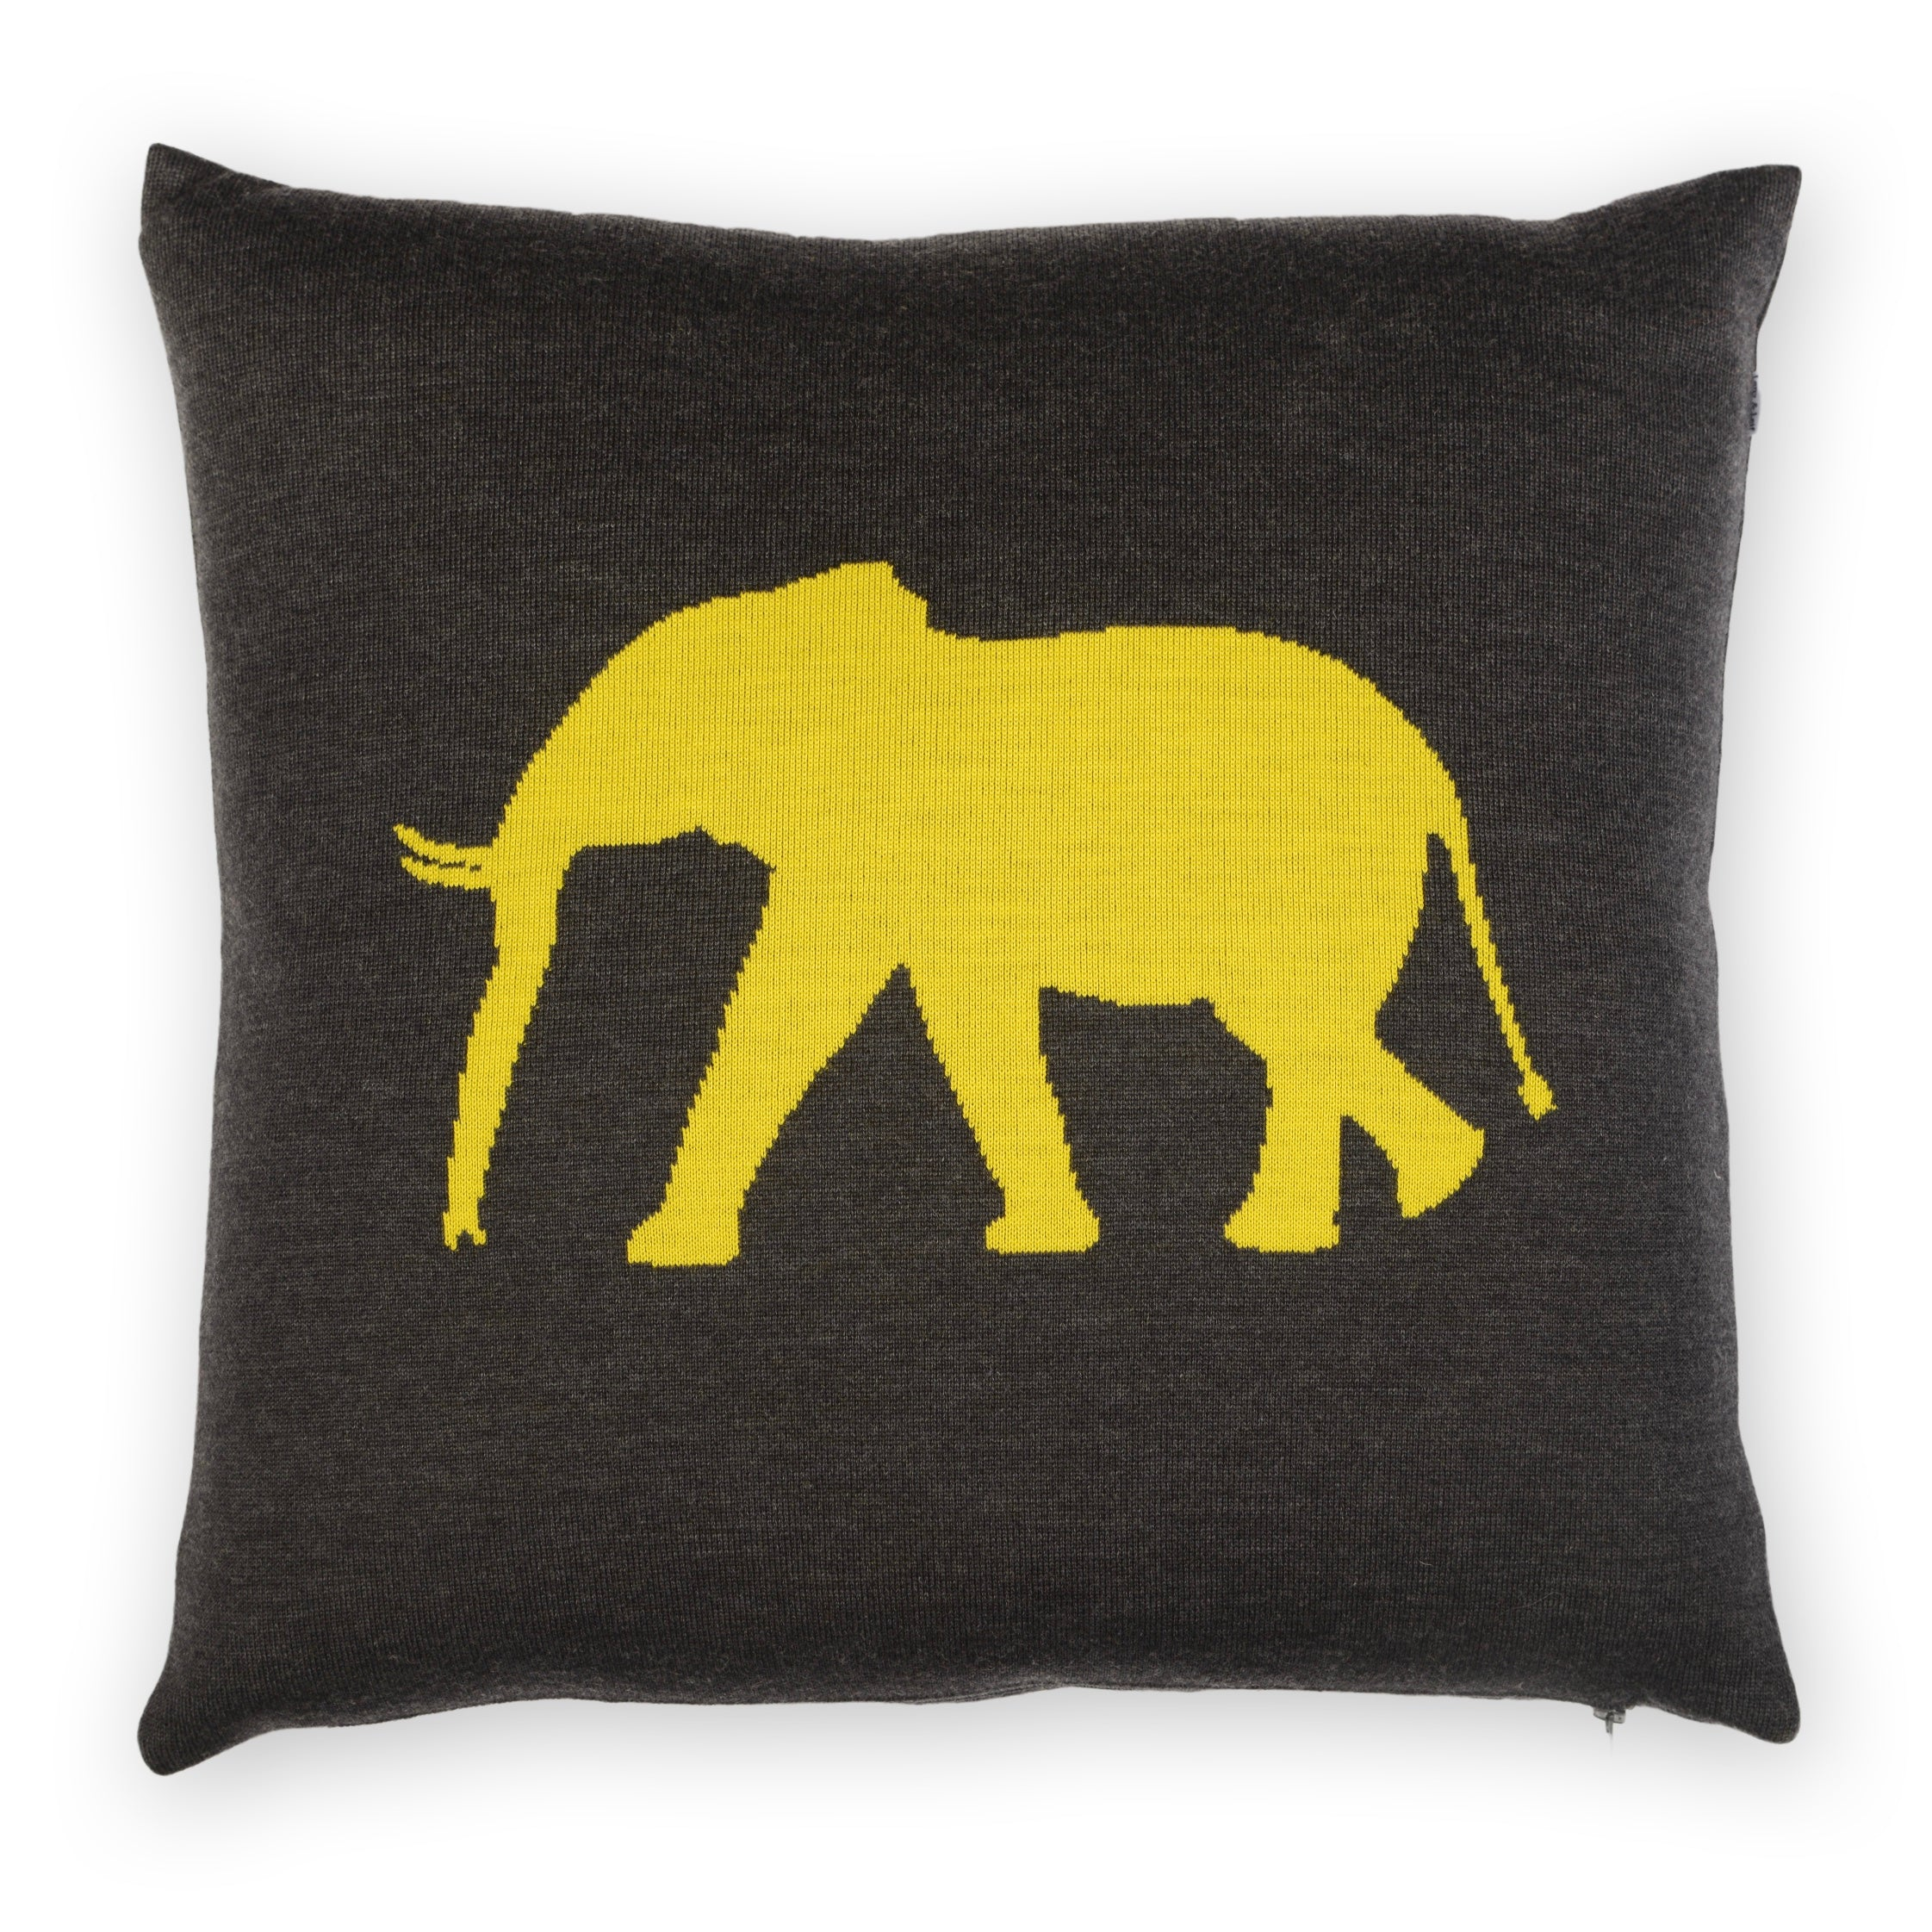 Cushion cover 50x50cm Elephant, dark gray / yellow